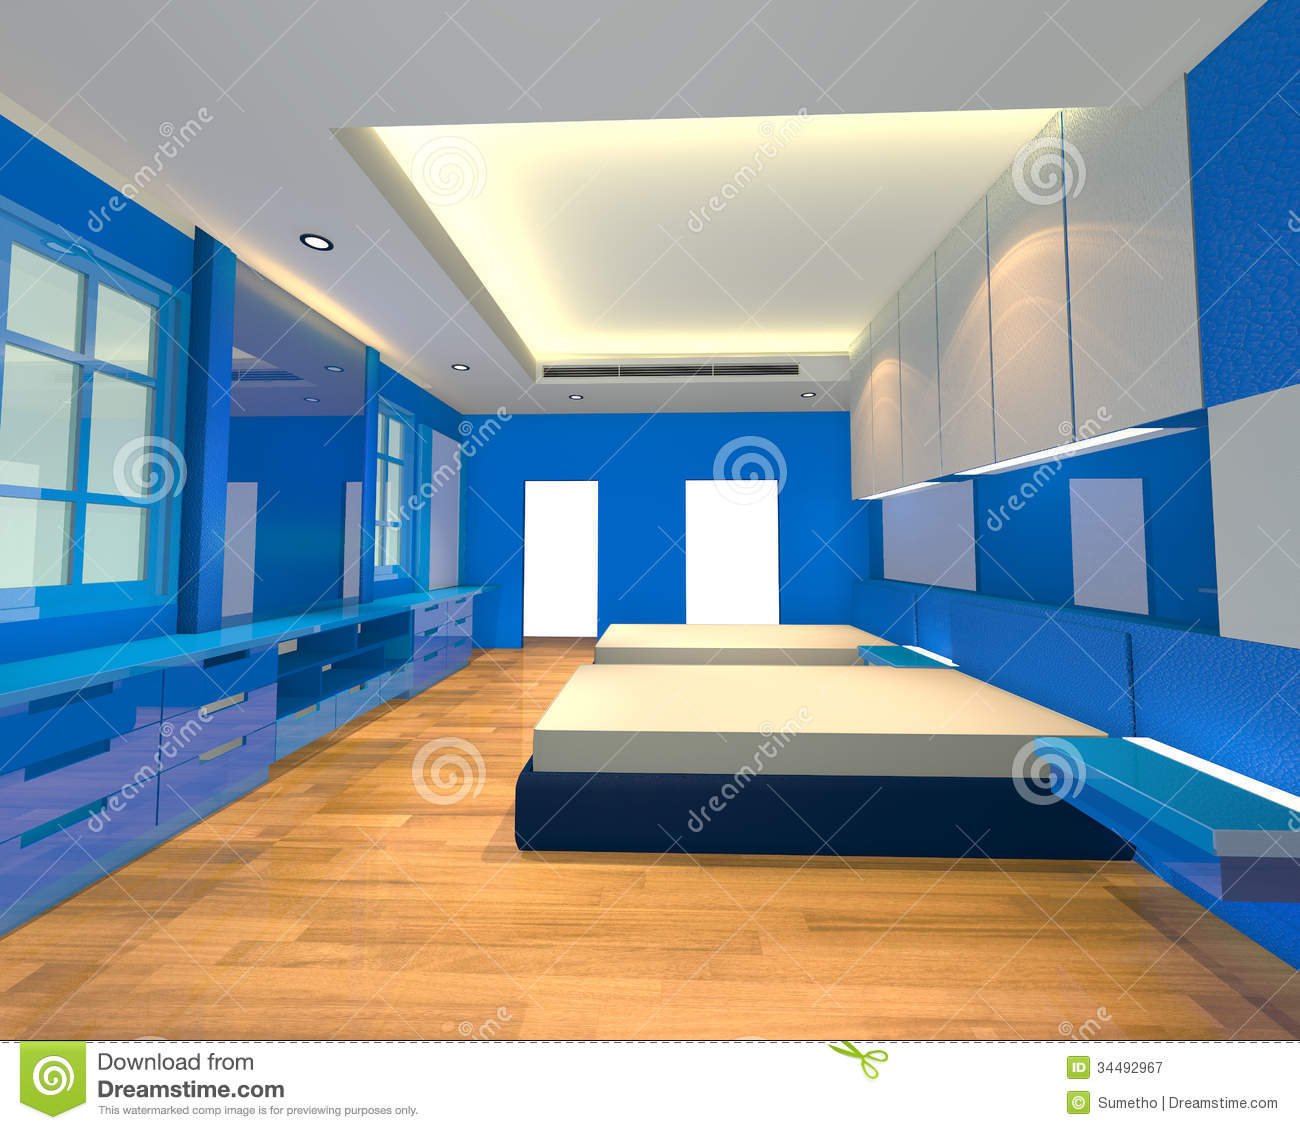 interior design bedroom blue theme royalty free stock photography image 34492967. Black Bedroom Furniture Sets. Home Design Ideas